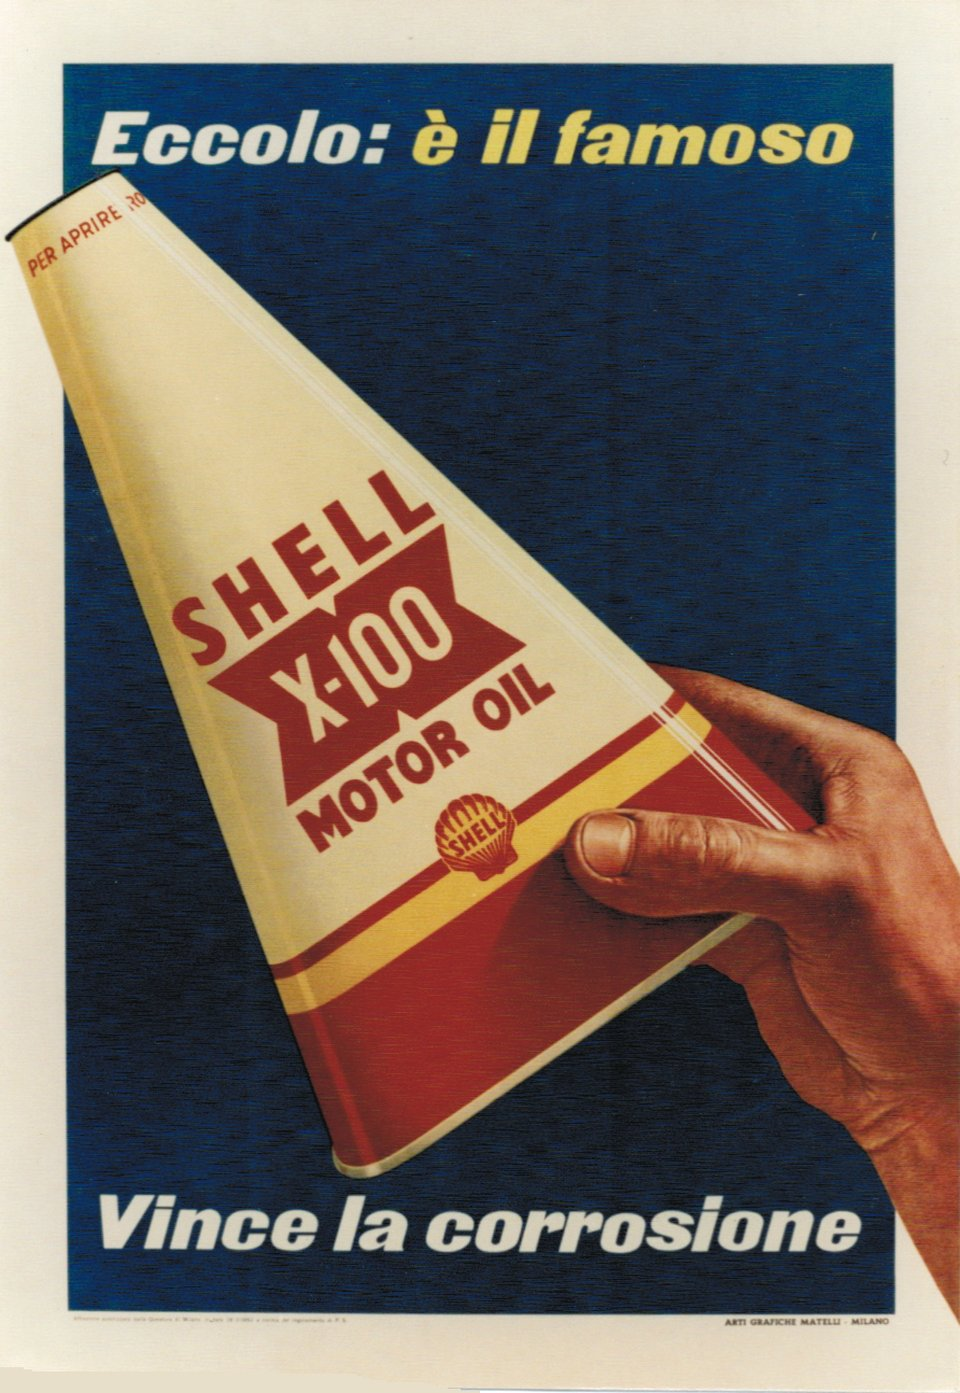 Shell X100 Motor Oil – Vintage poster – ANONYME – 1952